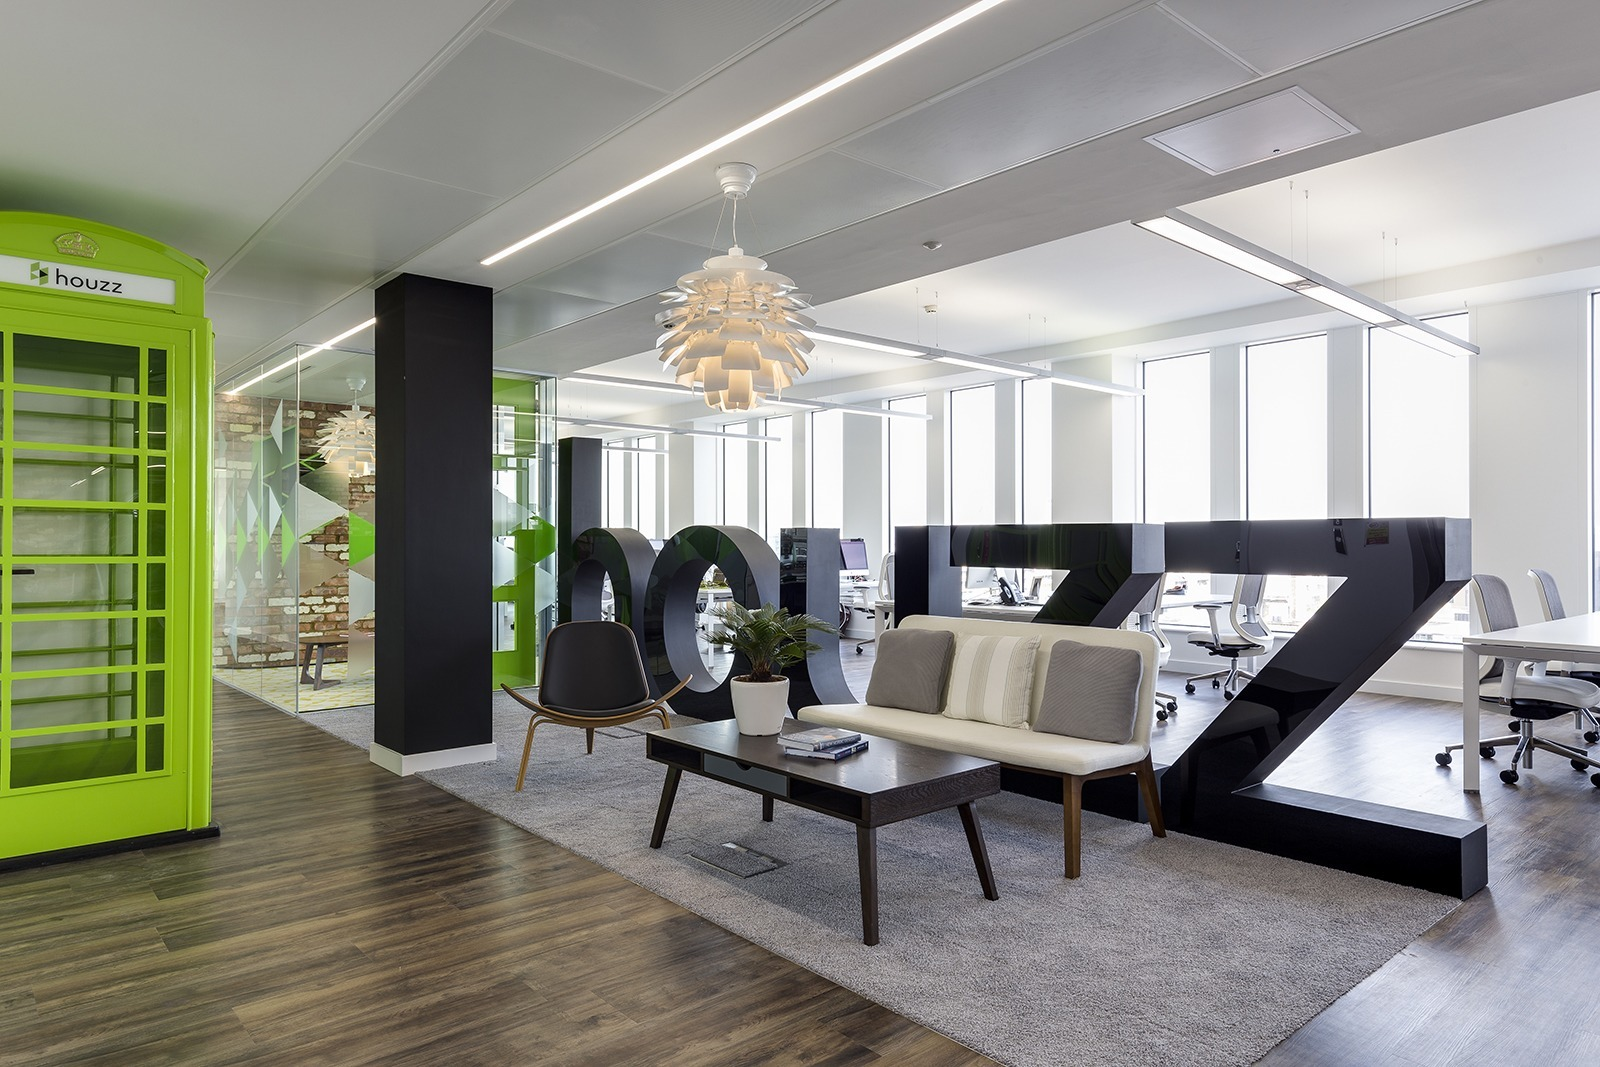 A tour of houzz s new european headquarters officelovin 39 for Office design houzz